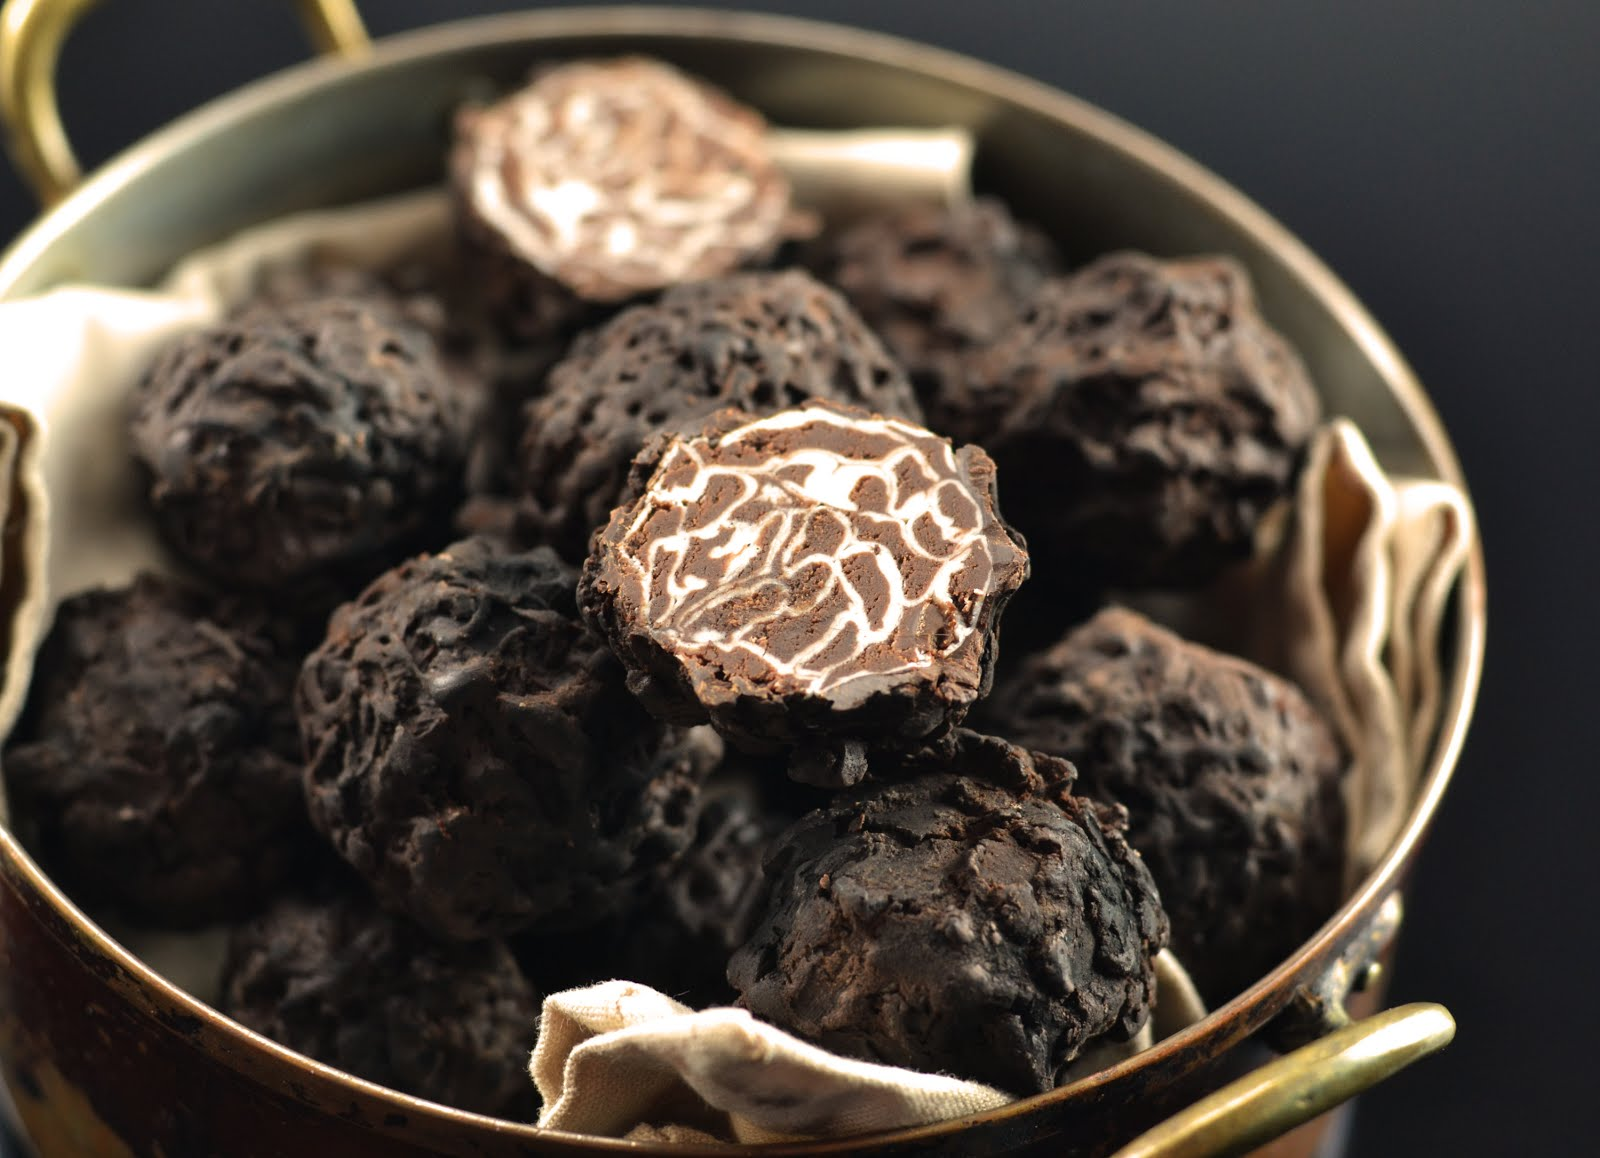 when-the-decoration-of-a-sweet-truffle-becomes-similar-to-the-real-one-truffleat